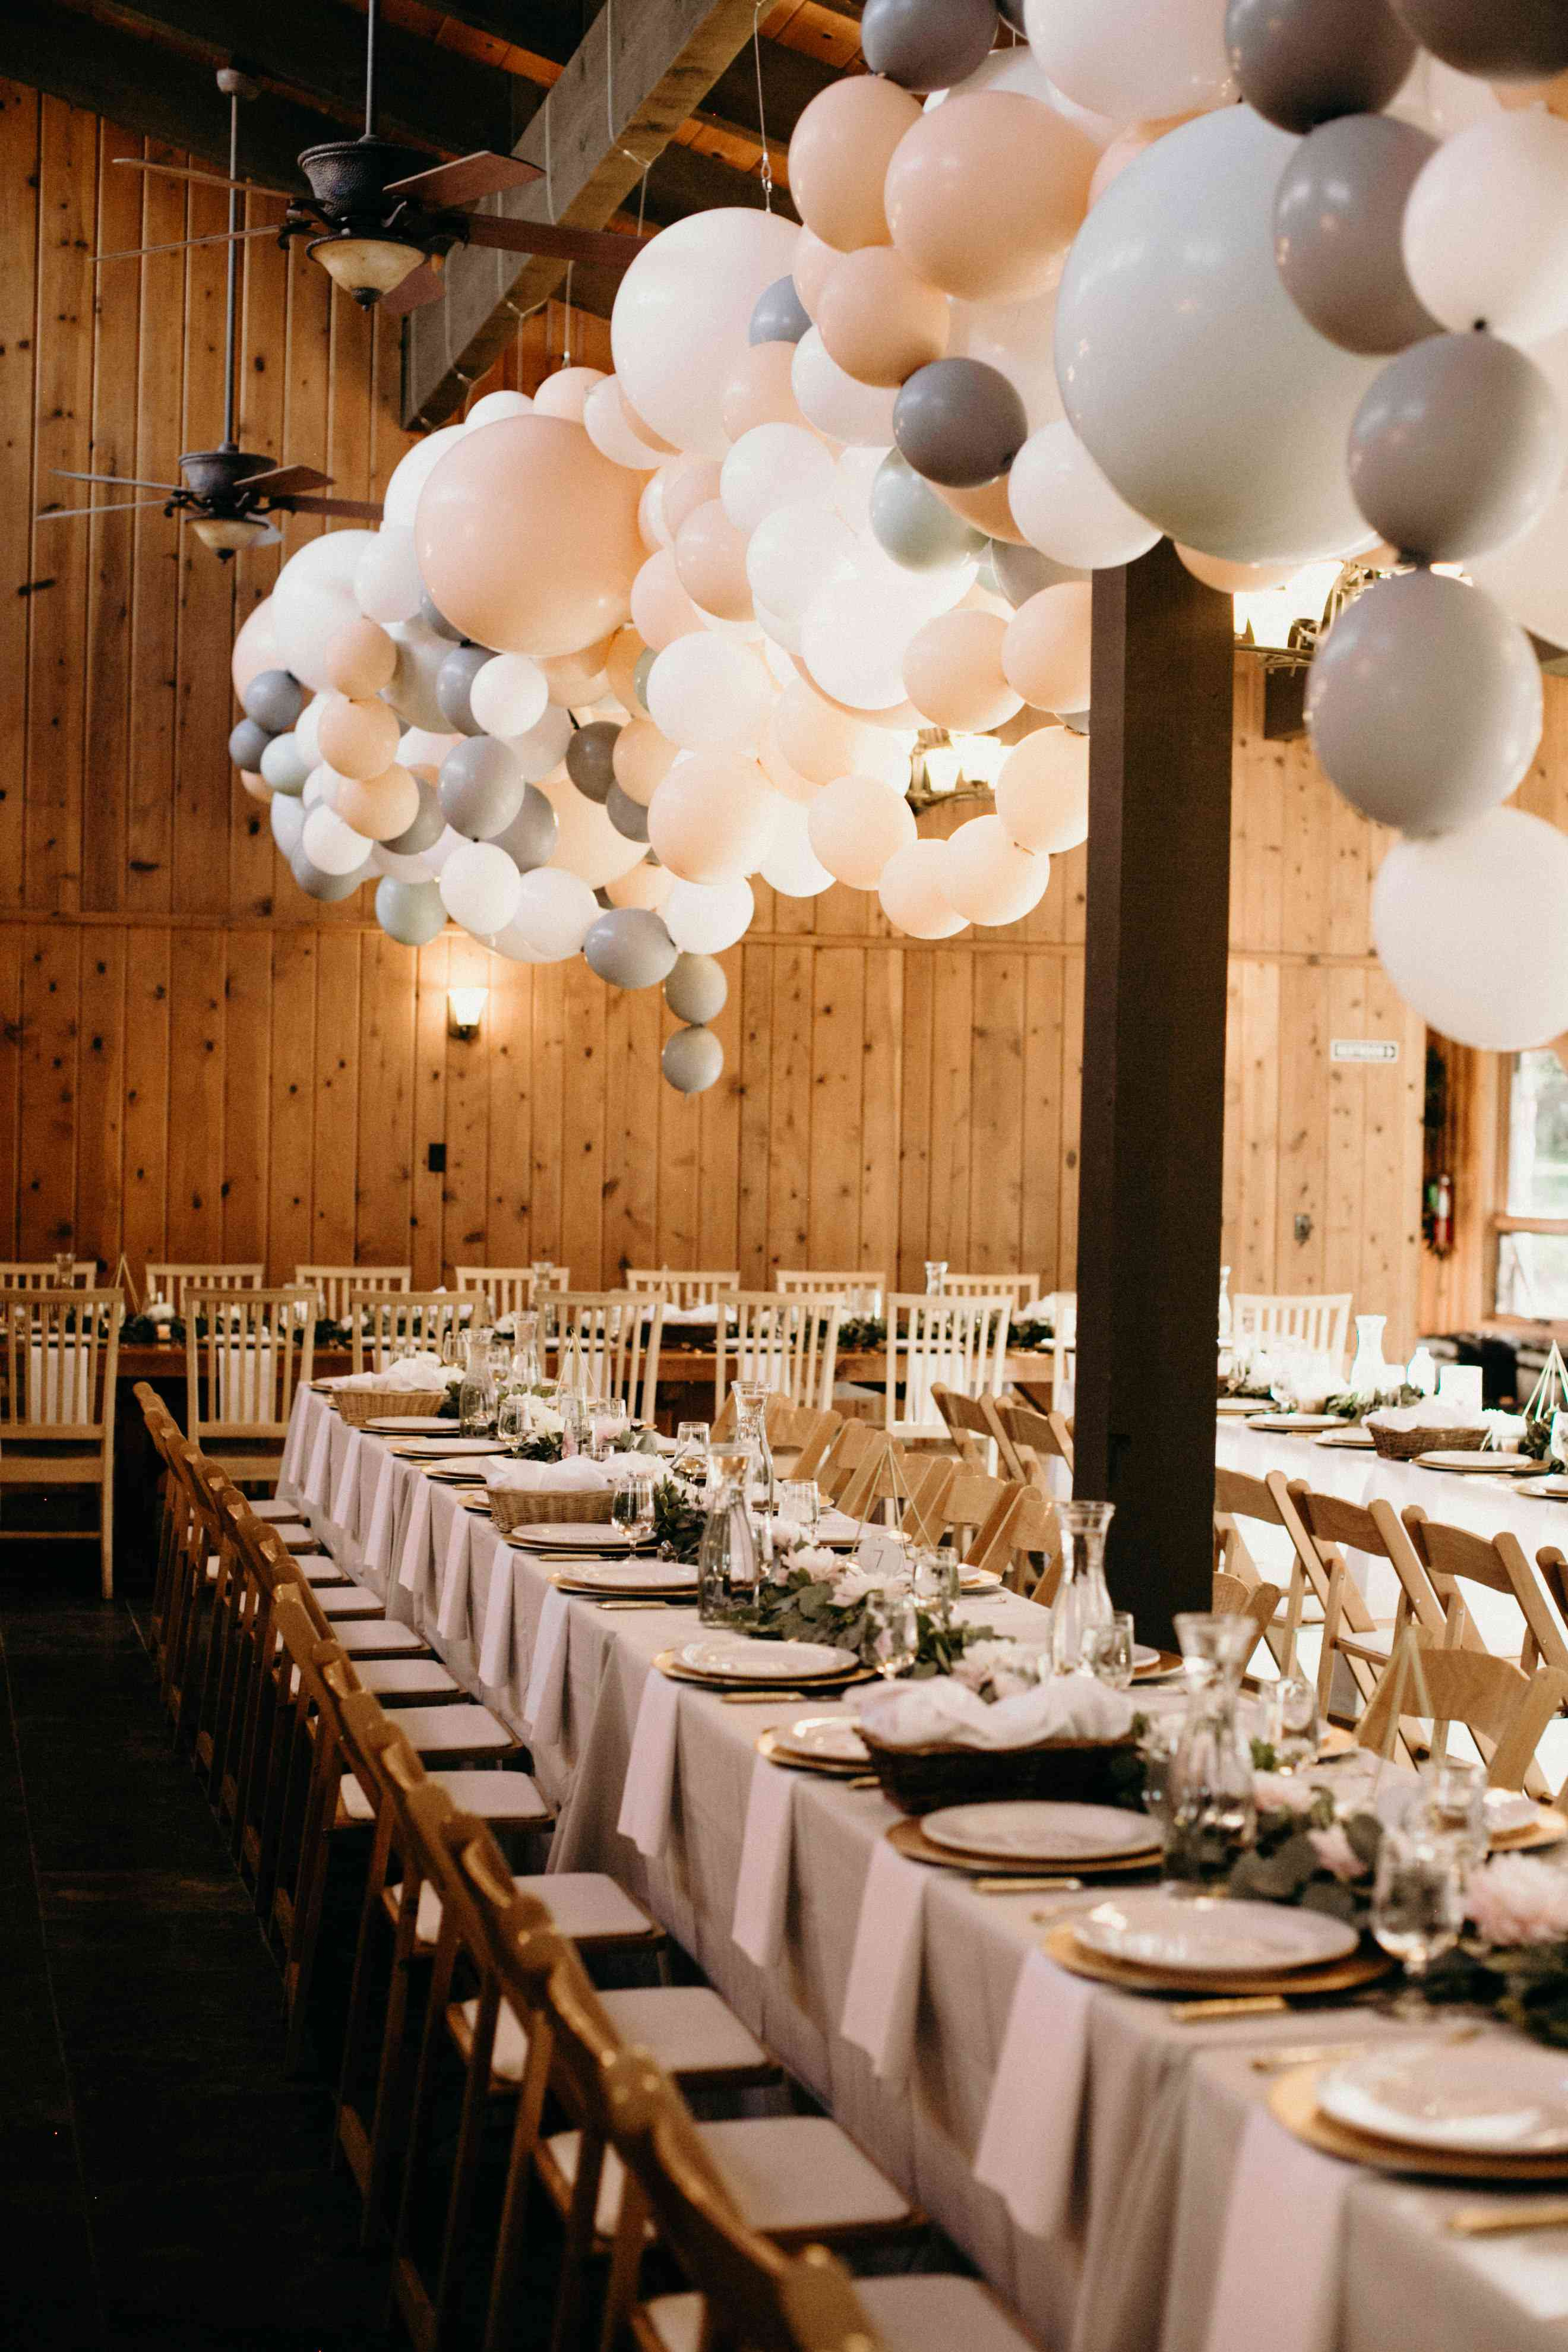 A large hanging balloon installation in neutral colors hanging over reception tables